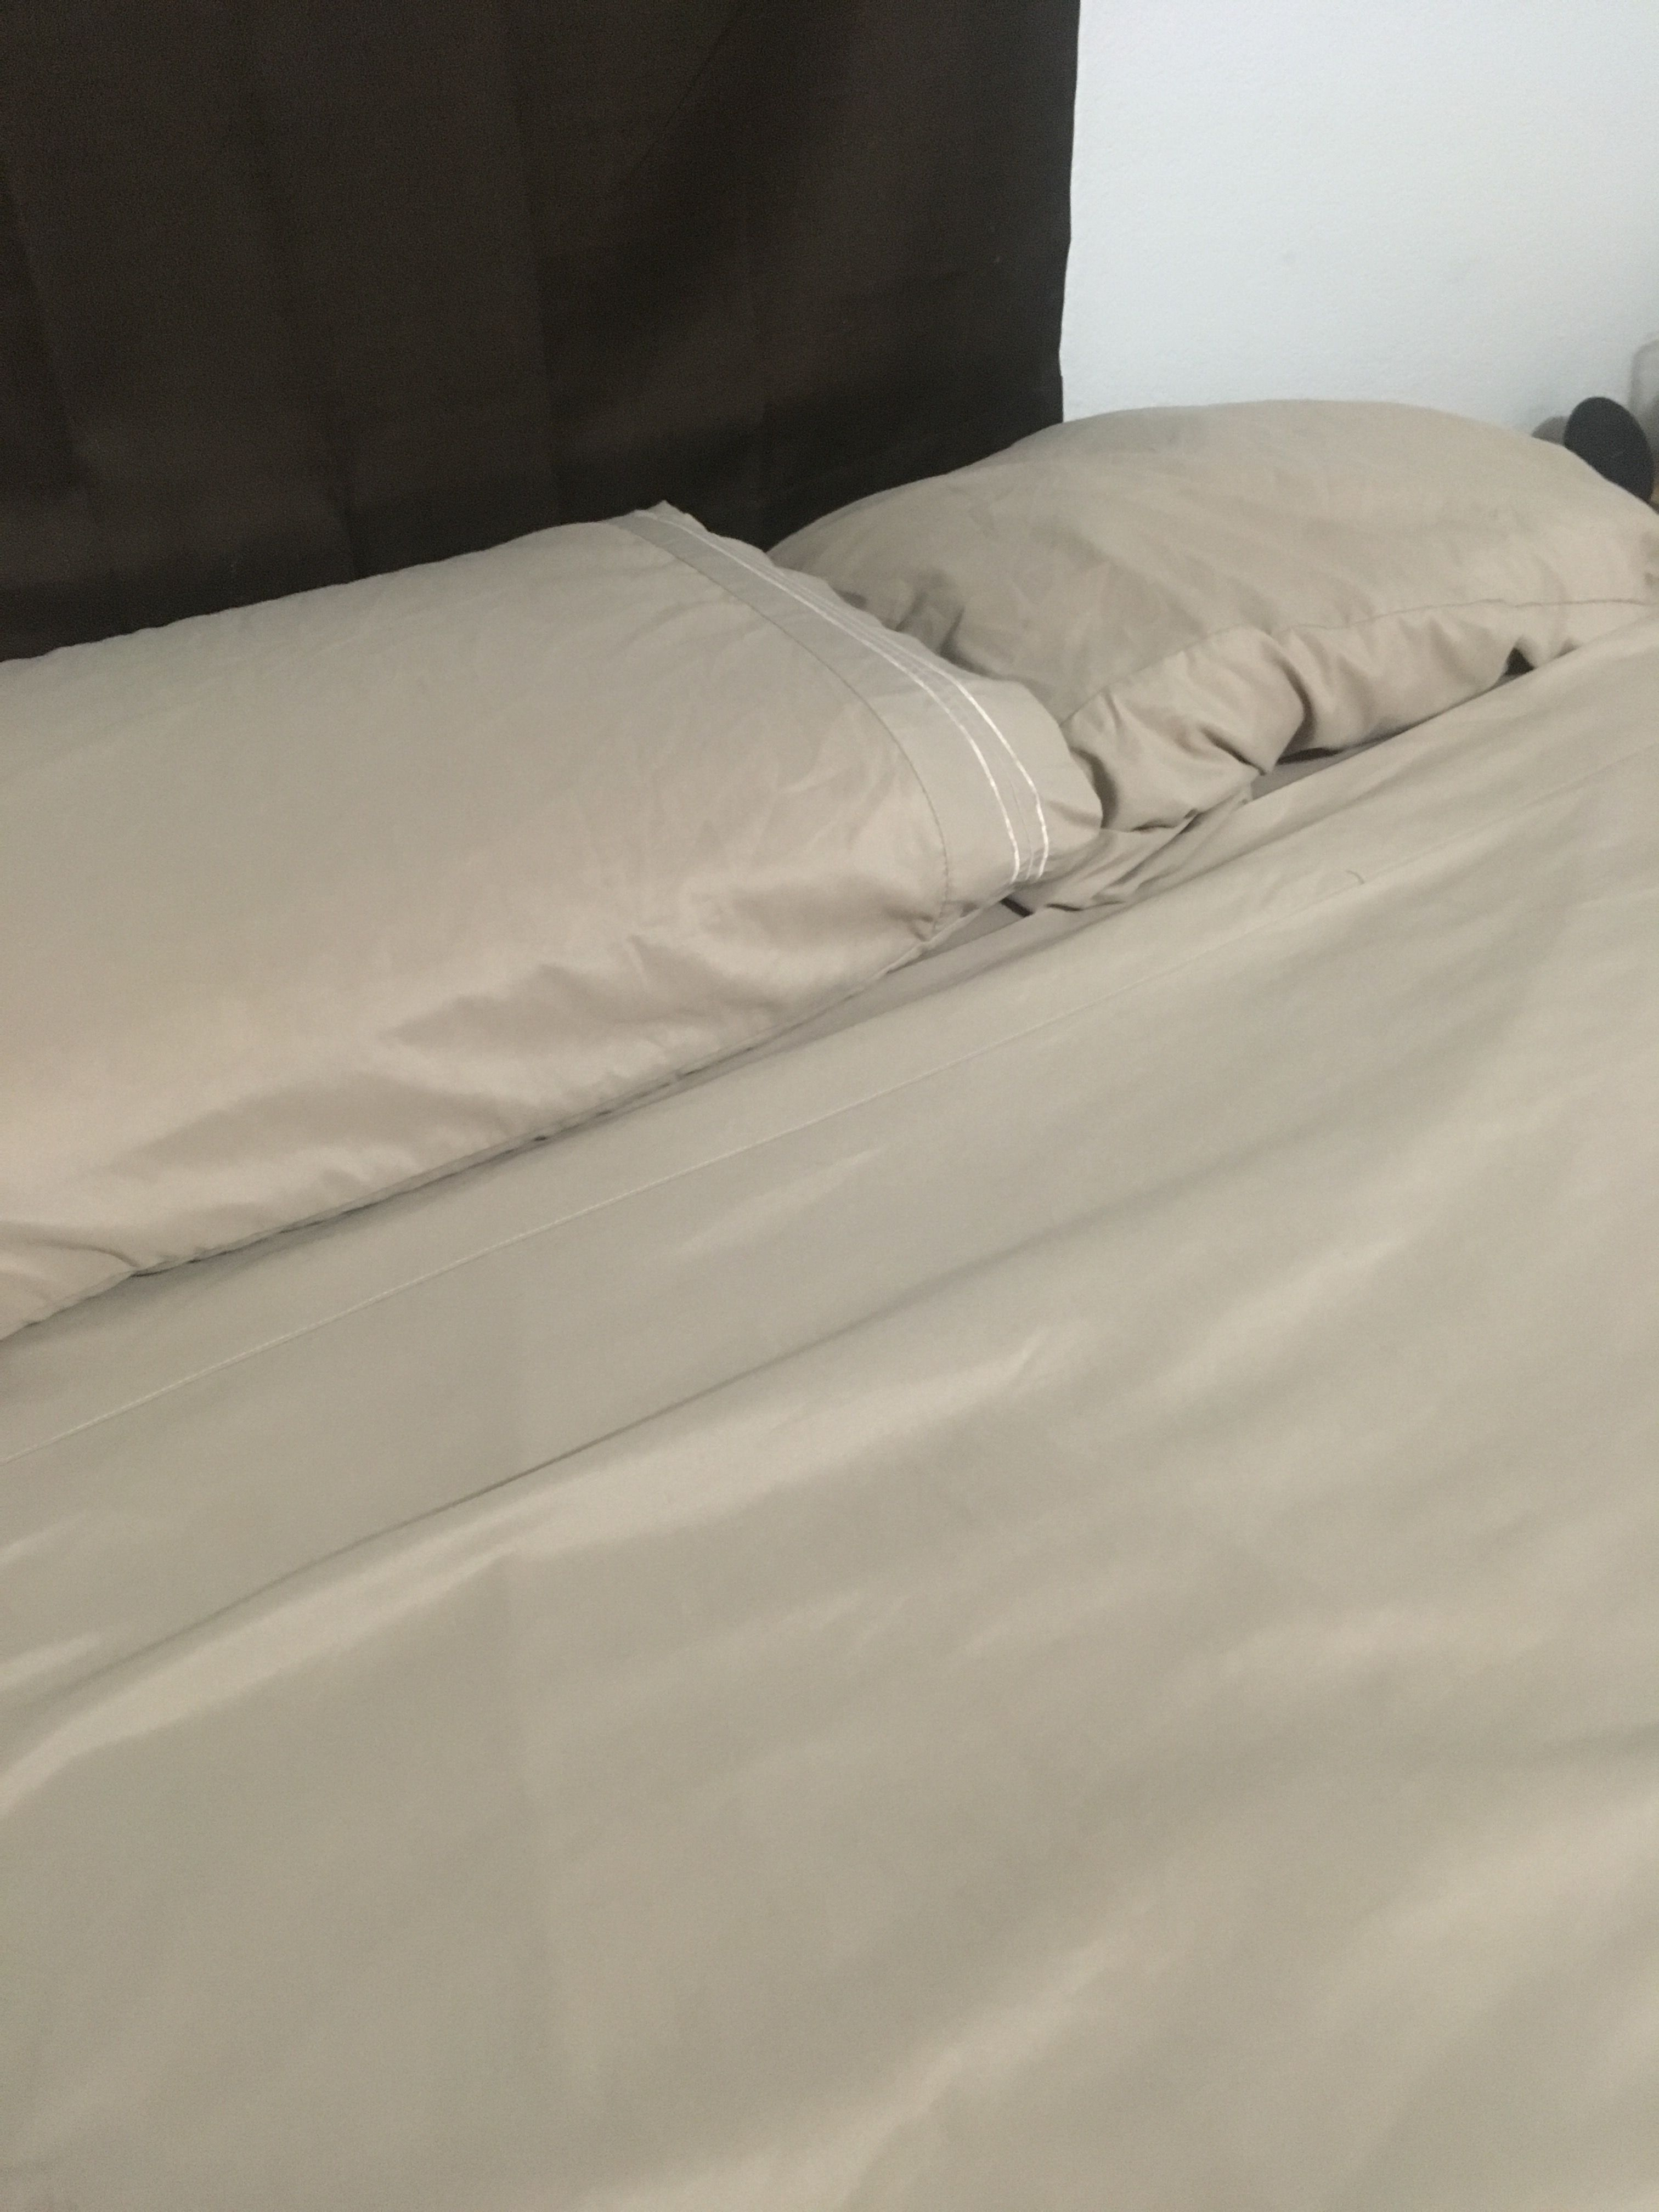 Bamboo Sheets By Caravalli Home Goods Are A Nice Change To My